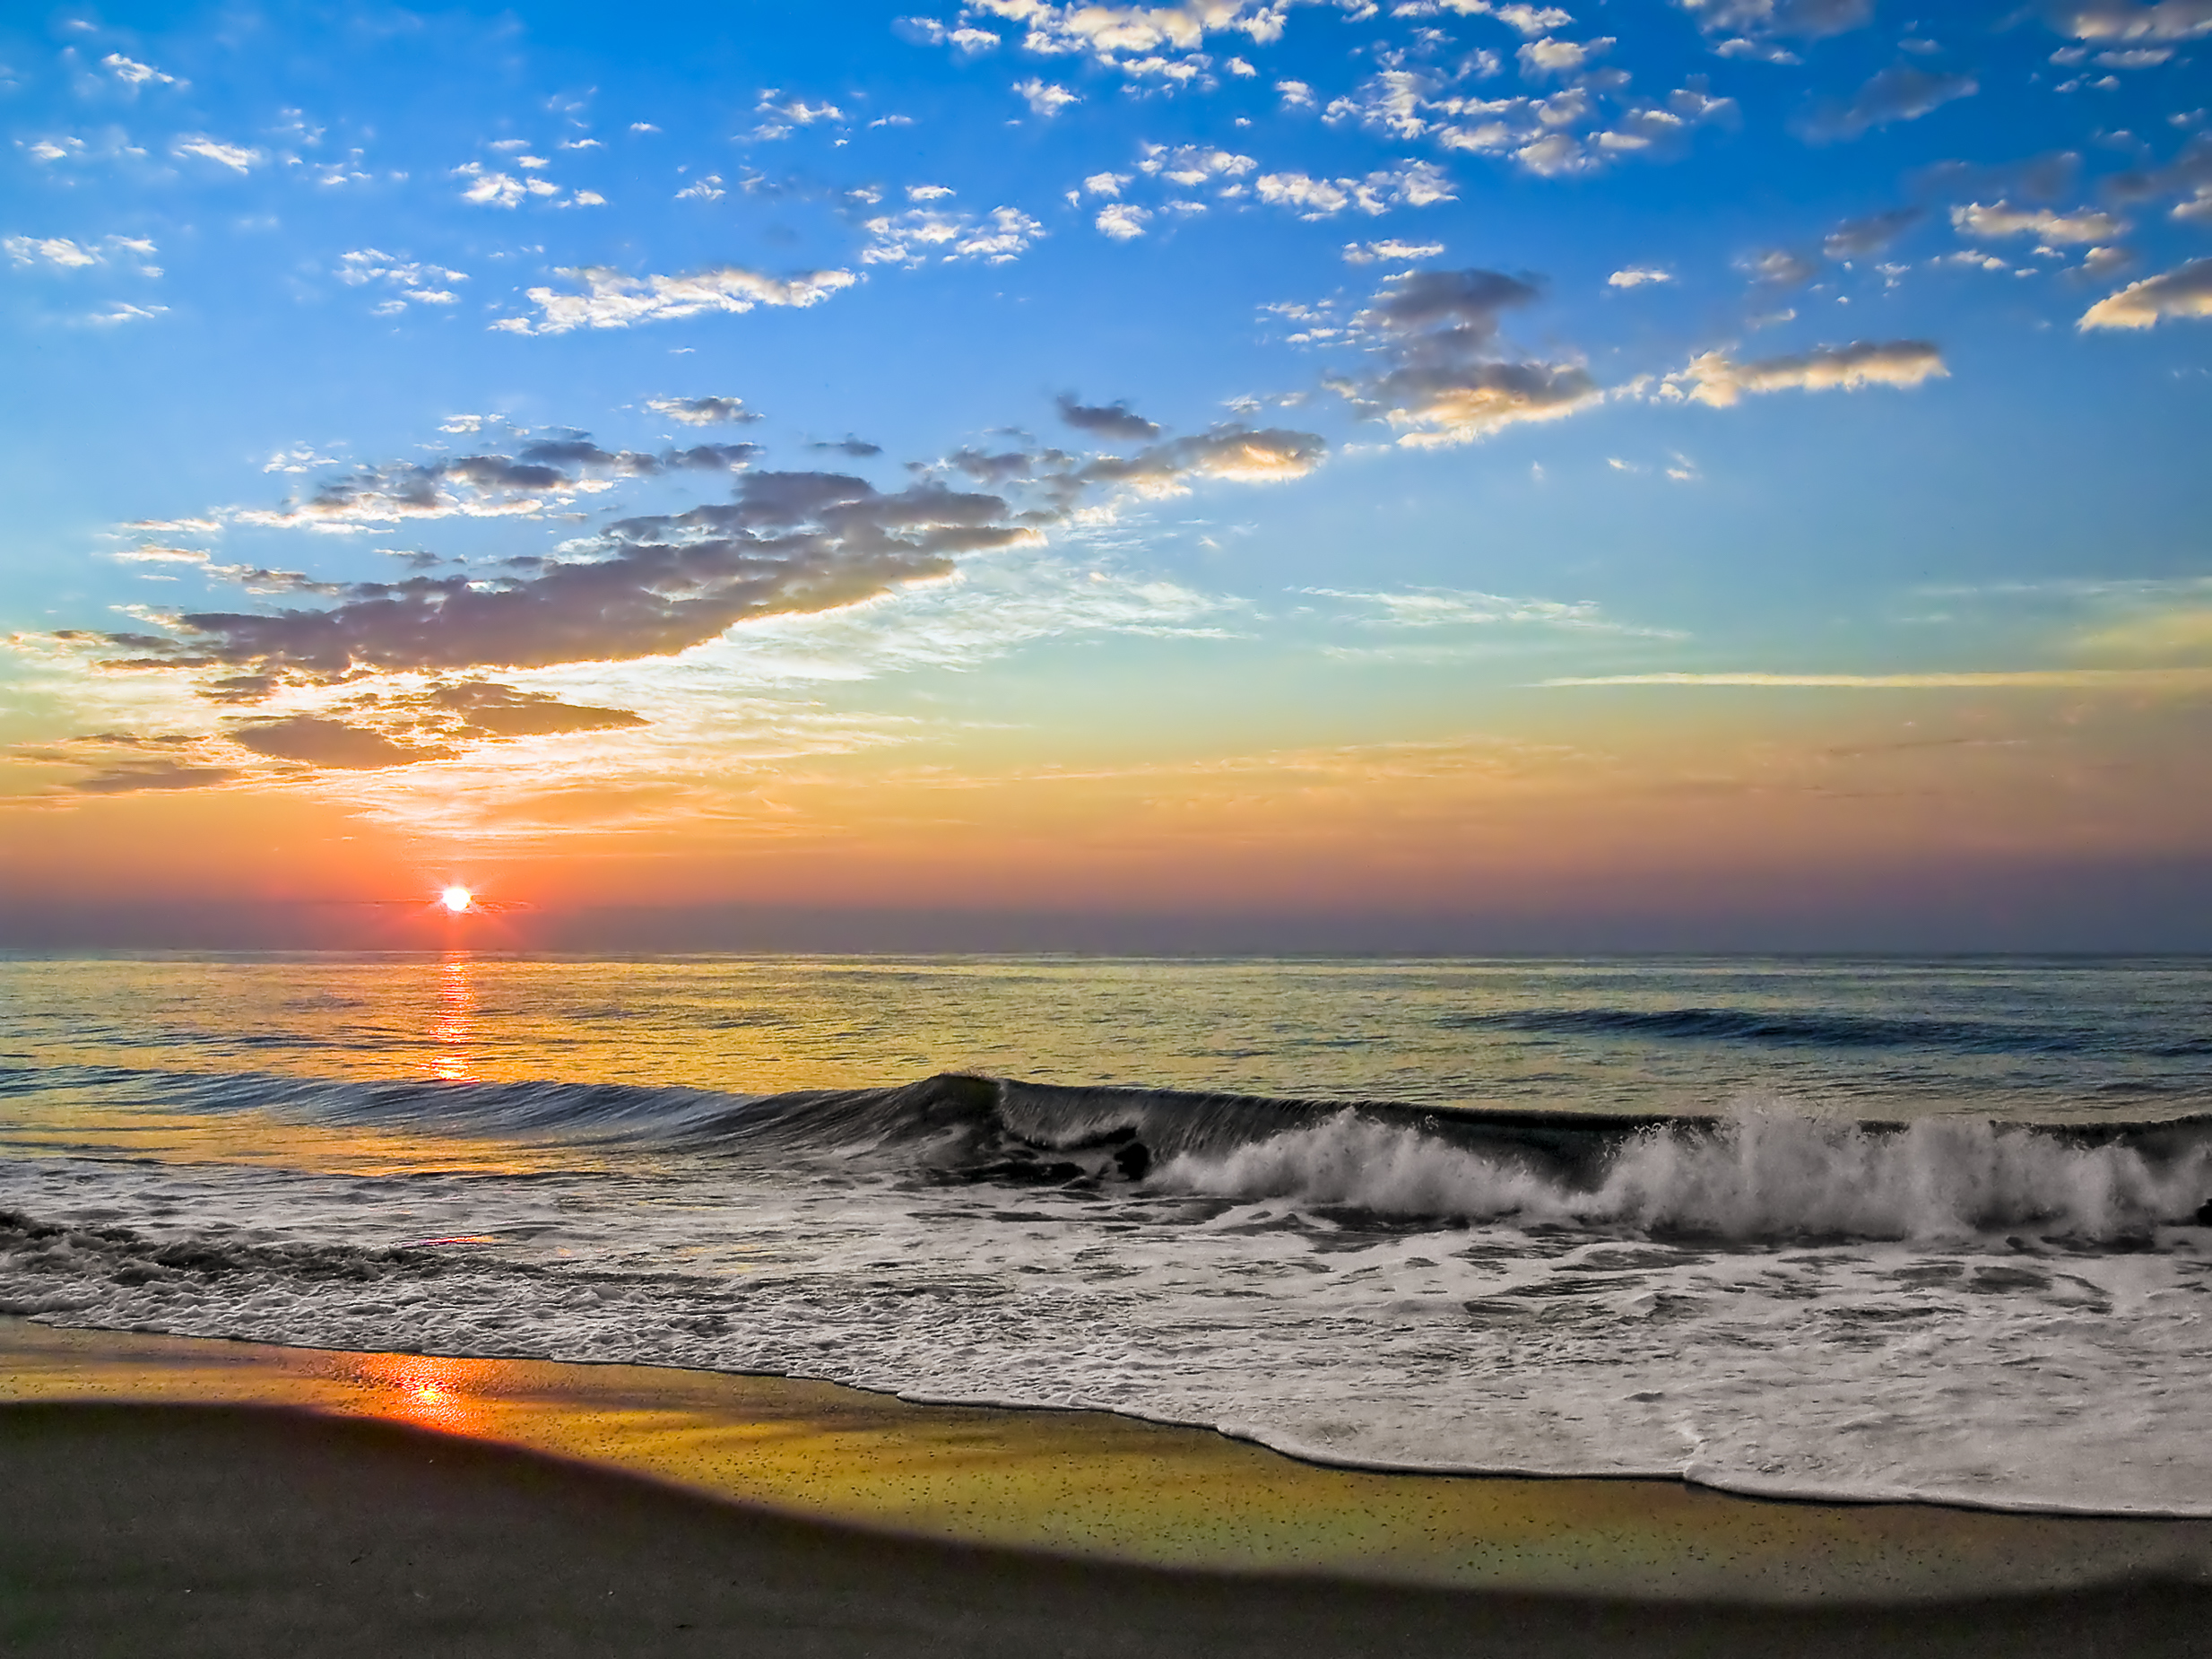 Real Estate Market Update for the Delaware and Maryland Beaches May 2020